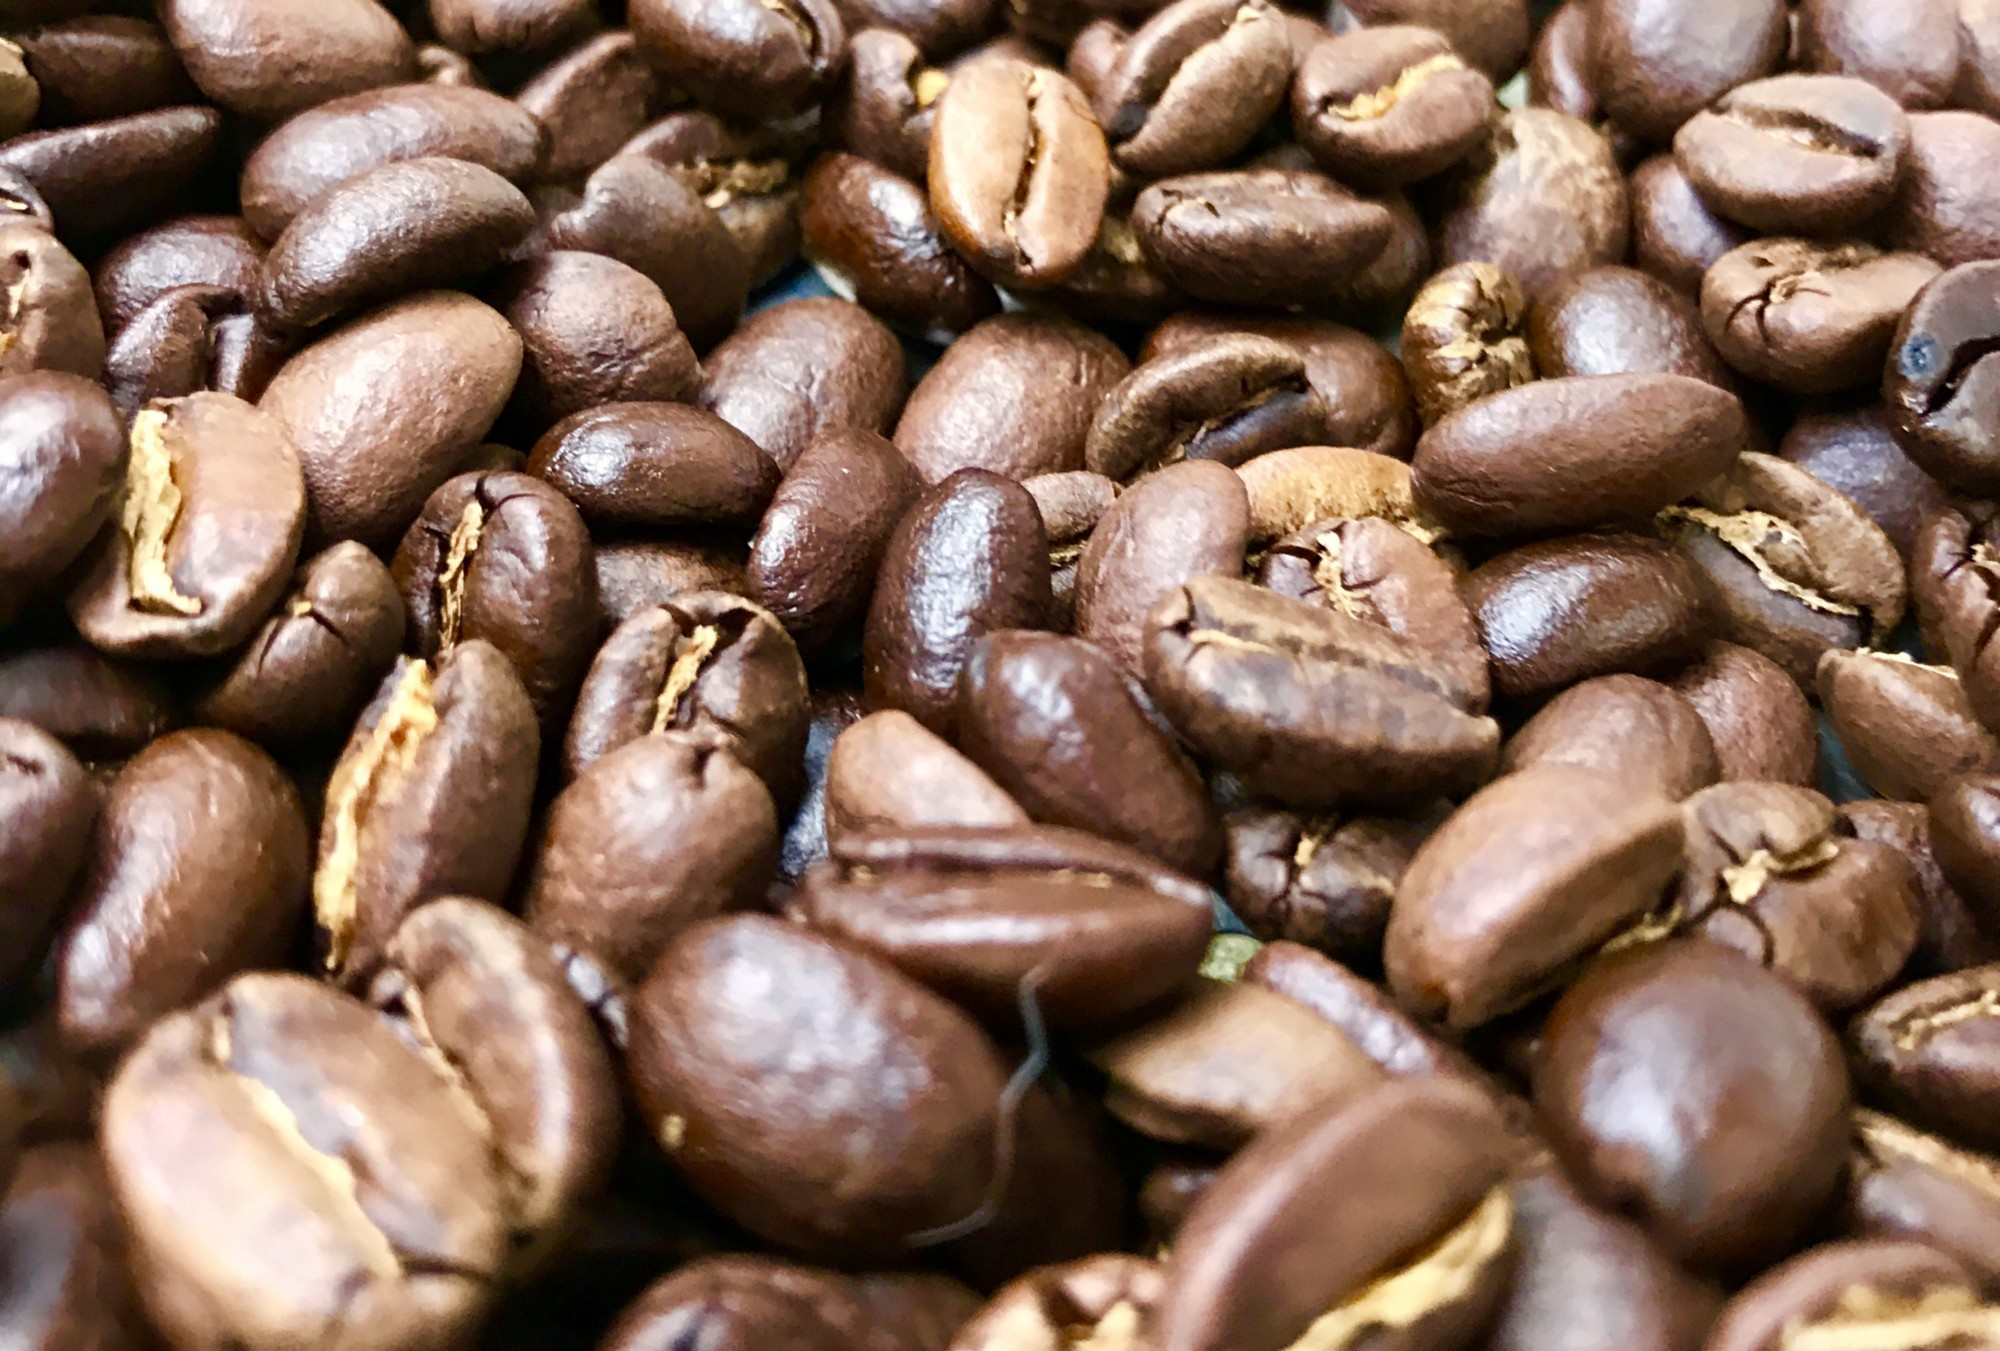 Freshly roasted coffee beans from centralMexico.